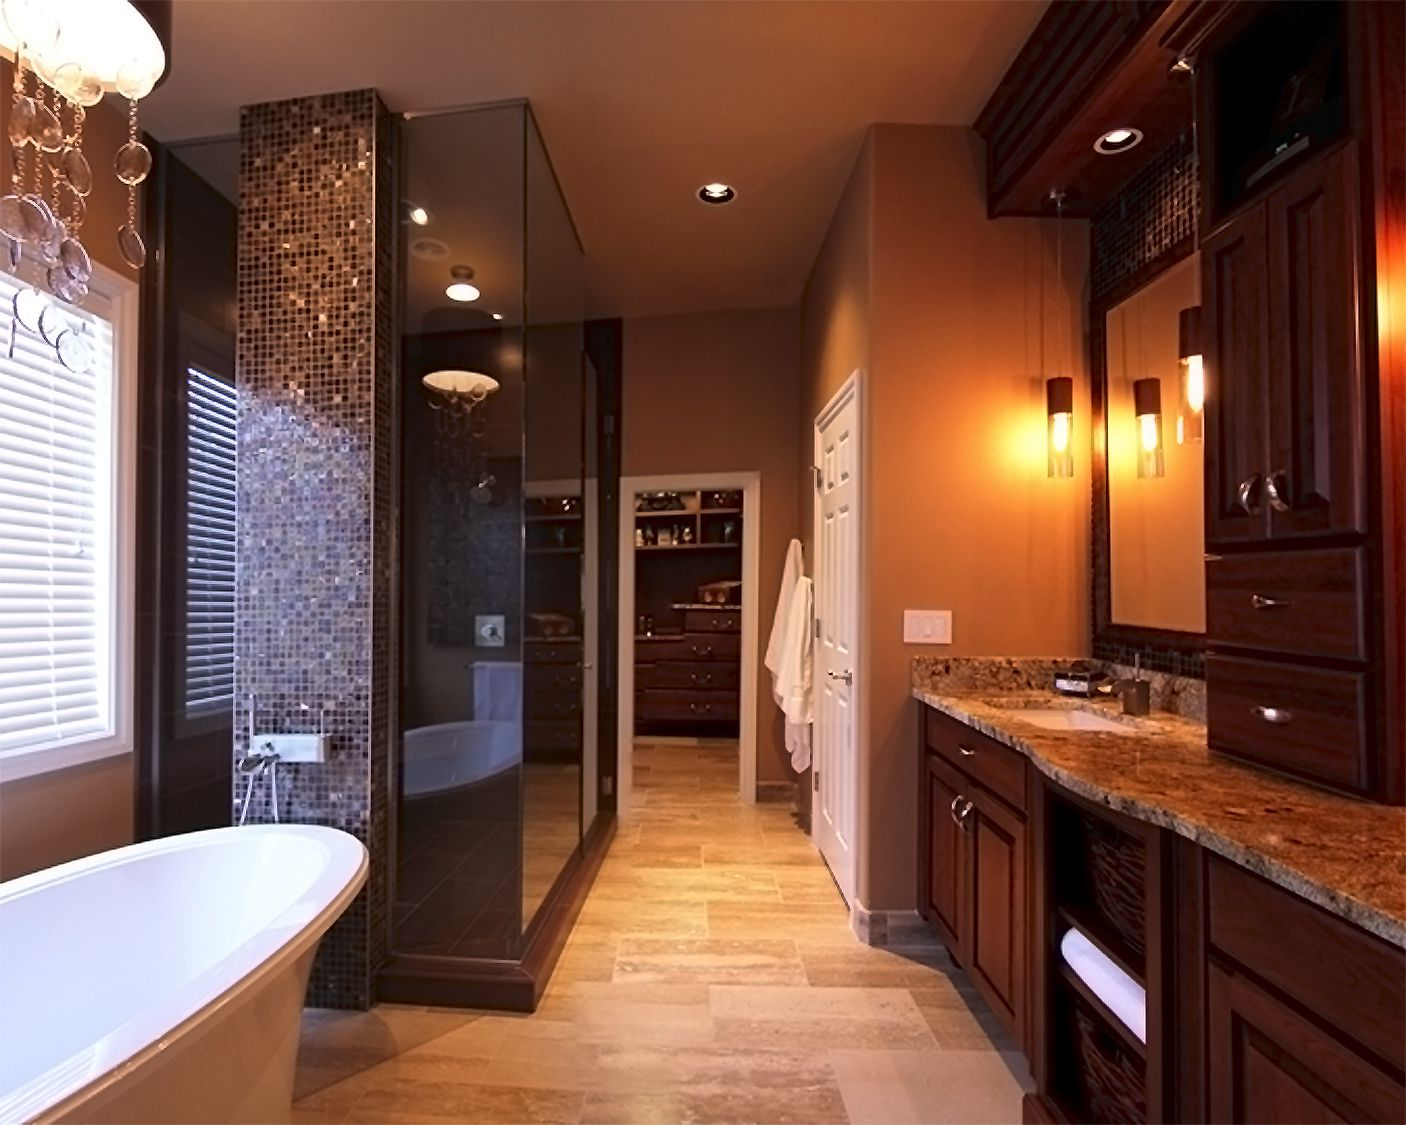 How Long It Takes To Remodel A Bathroom - Bathroom remodel schedule